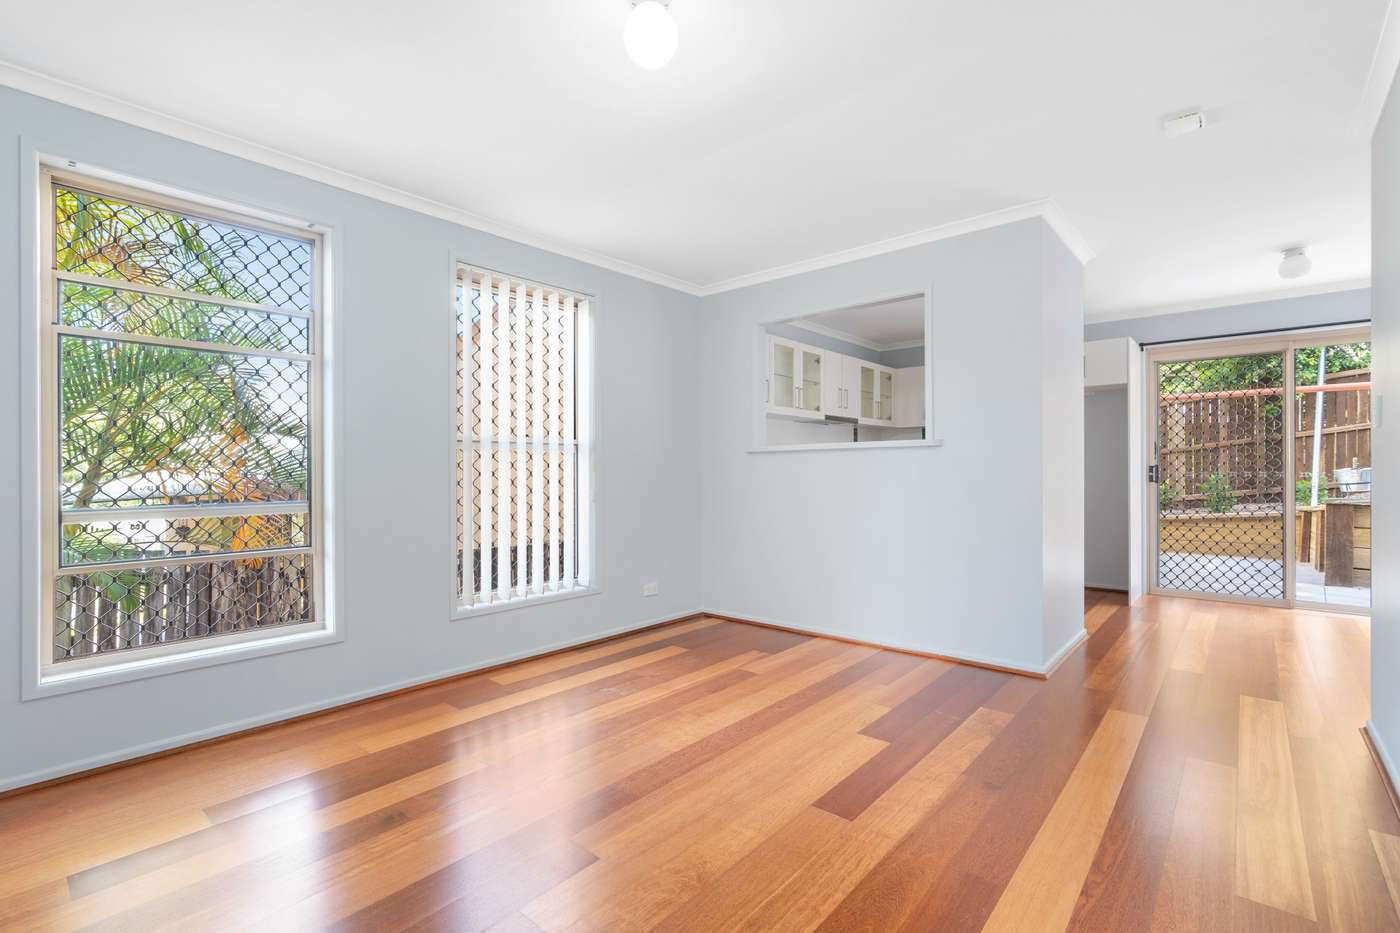 Main view of Homely unit listing, 13 Fairmeadow Road, Nambour, QLD 4560